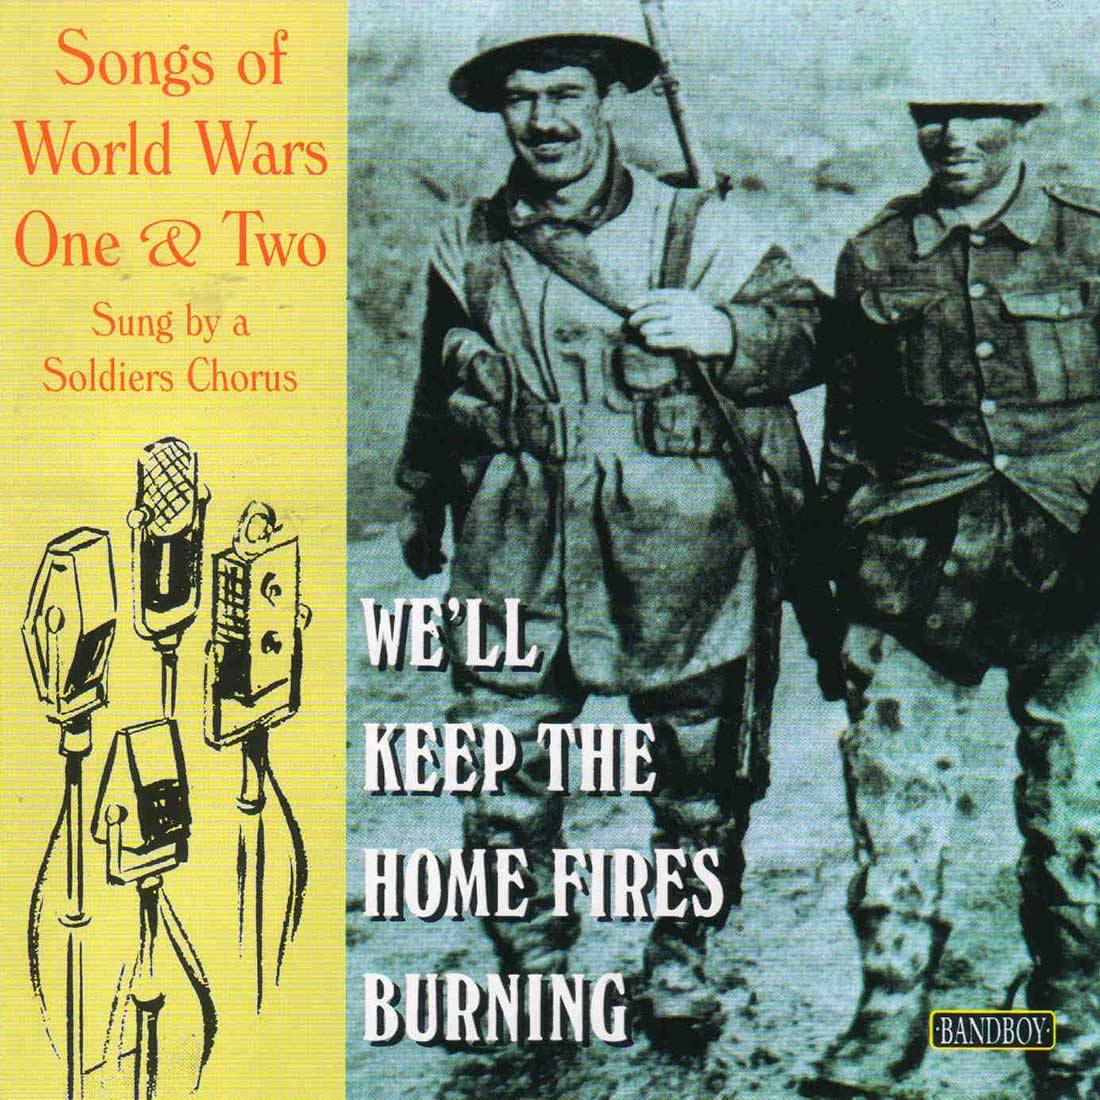 CD - Songs of World Wars One & Two, We'll Keep The Home Fires Burning